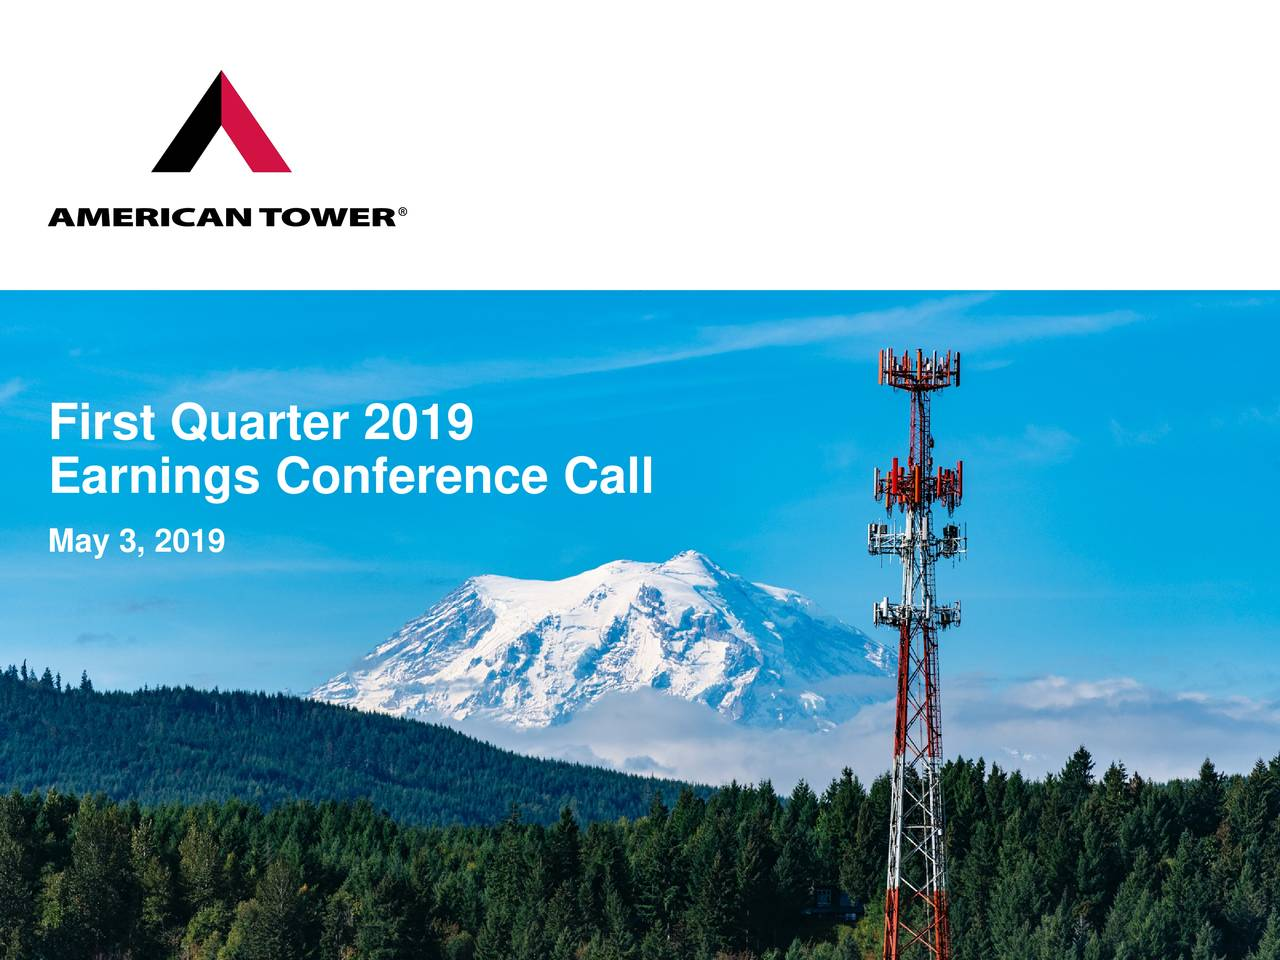 Earnings Conference Call May 3, 2019